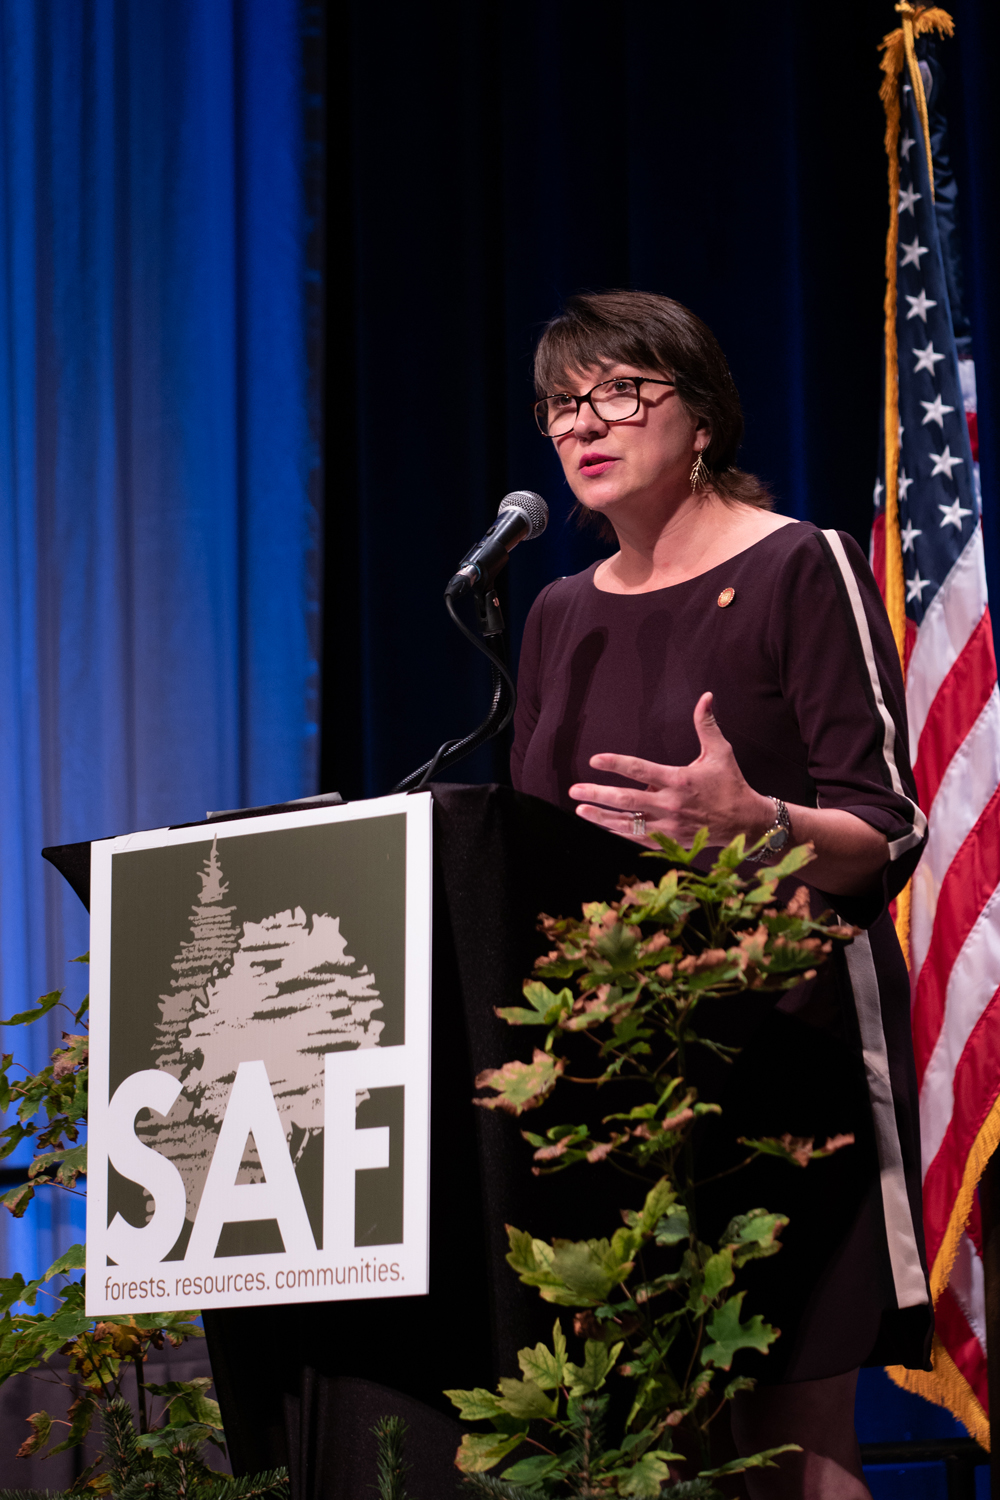 Wasim Muklashy Photography_-SAM_5452_Society of American Foresters National Convention_585_World Forestry Center Leadership Hall Induction_Allyn Ford135_Society of American Foresters Convention 2018_612.jpg